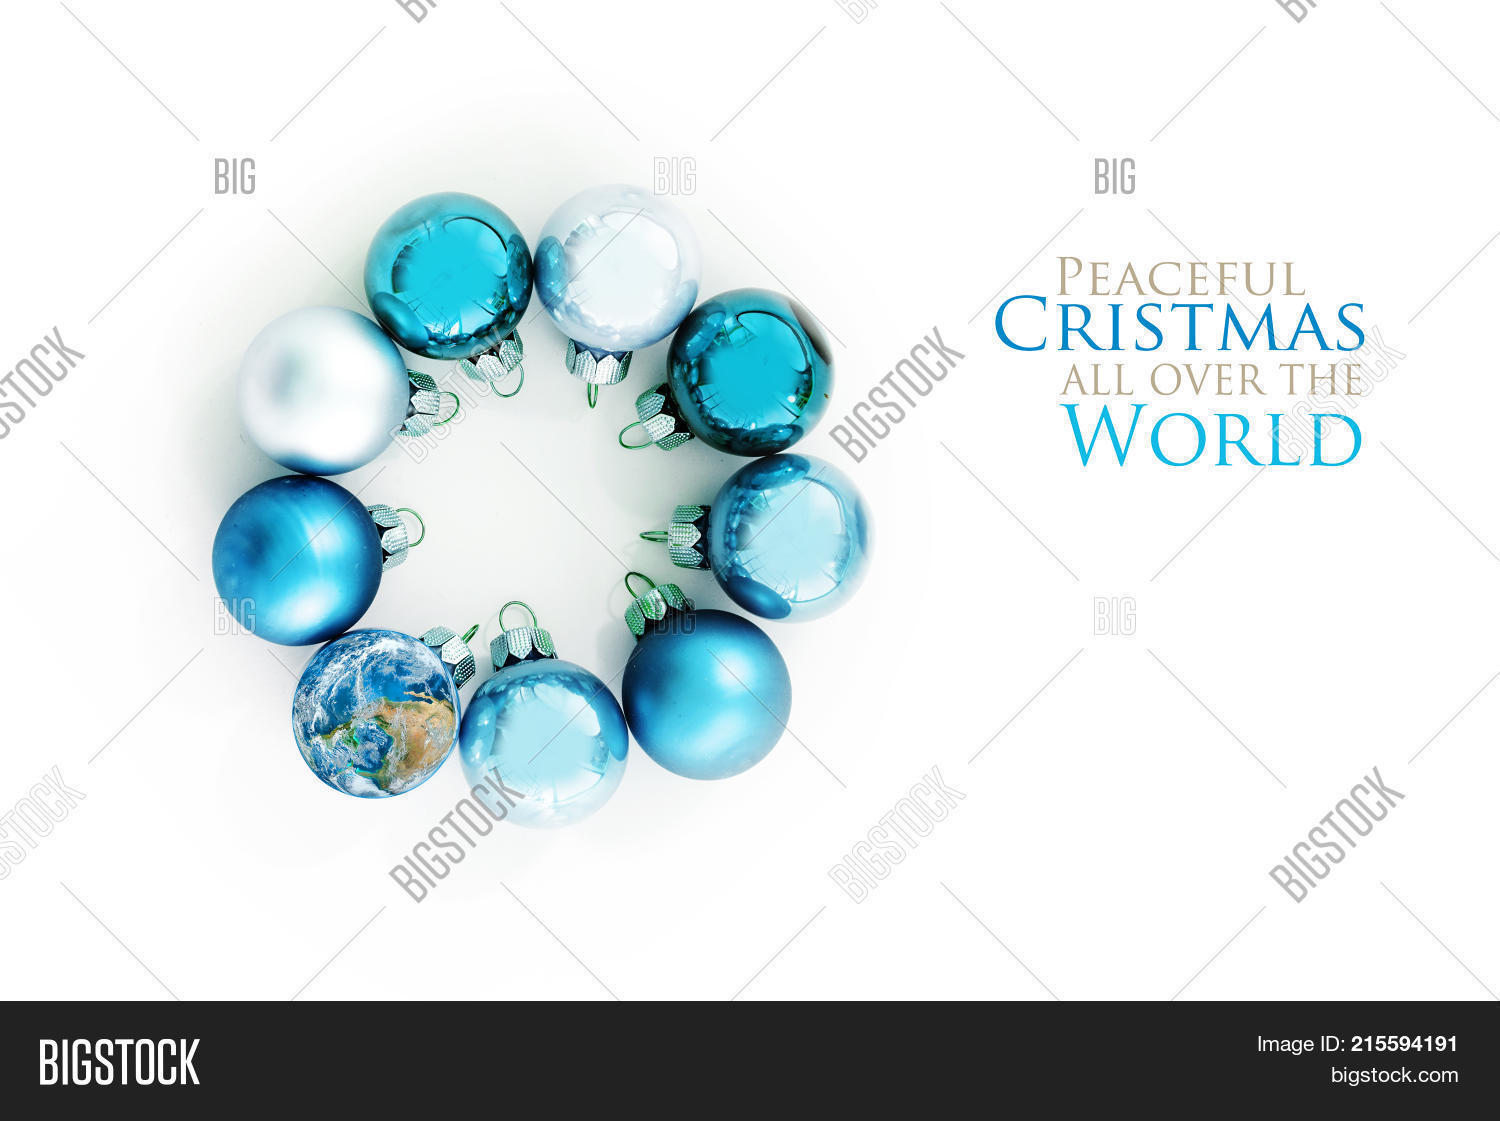 Blue Christmas Balls Image & Photo (Free Trial) | Bigstock